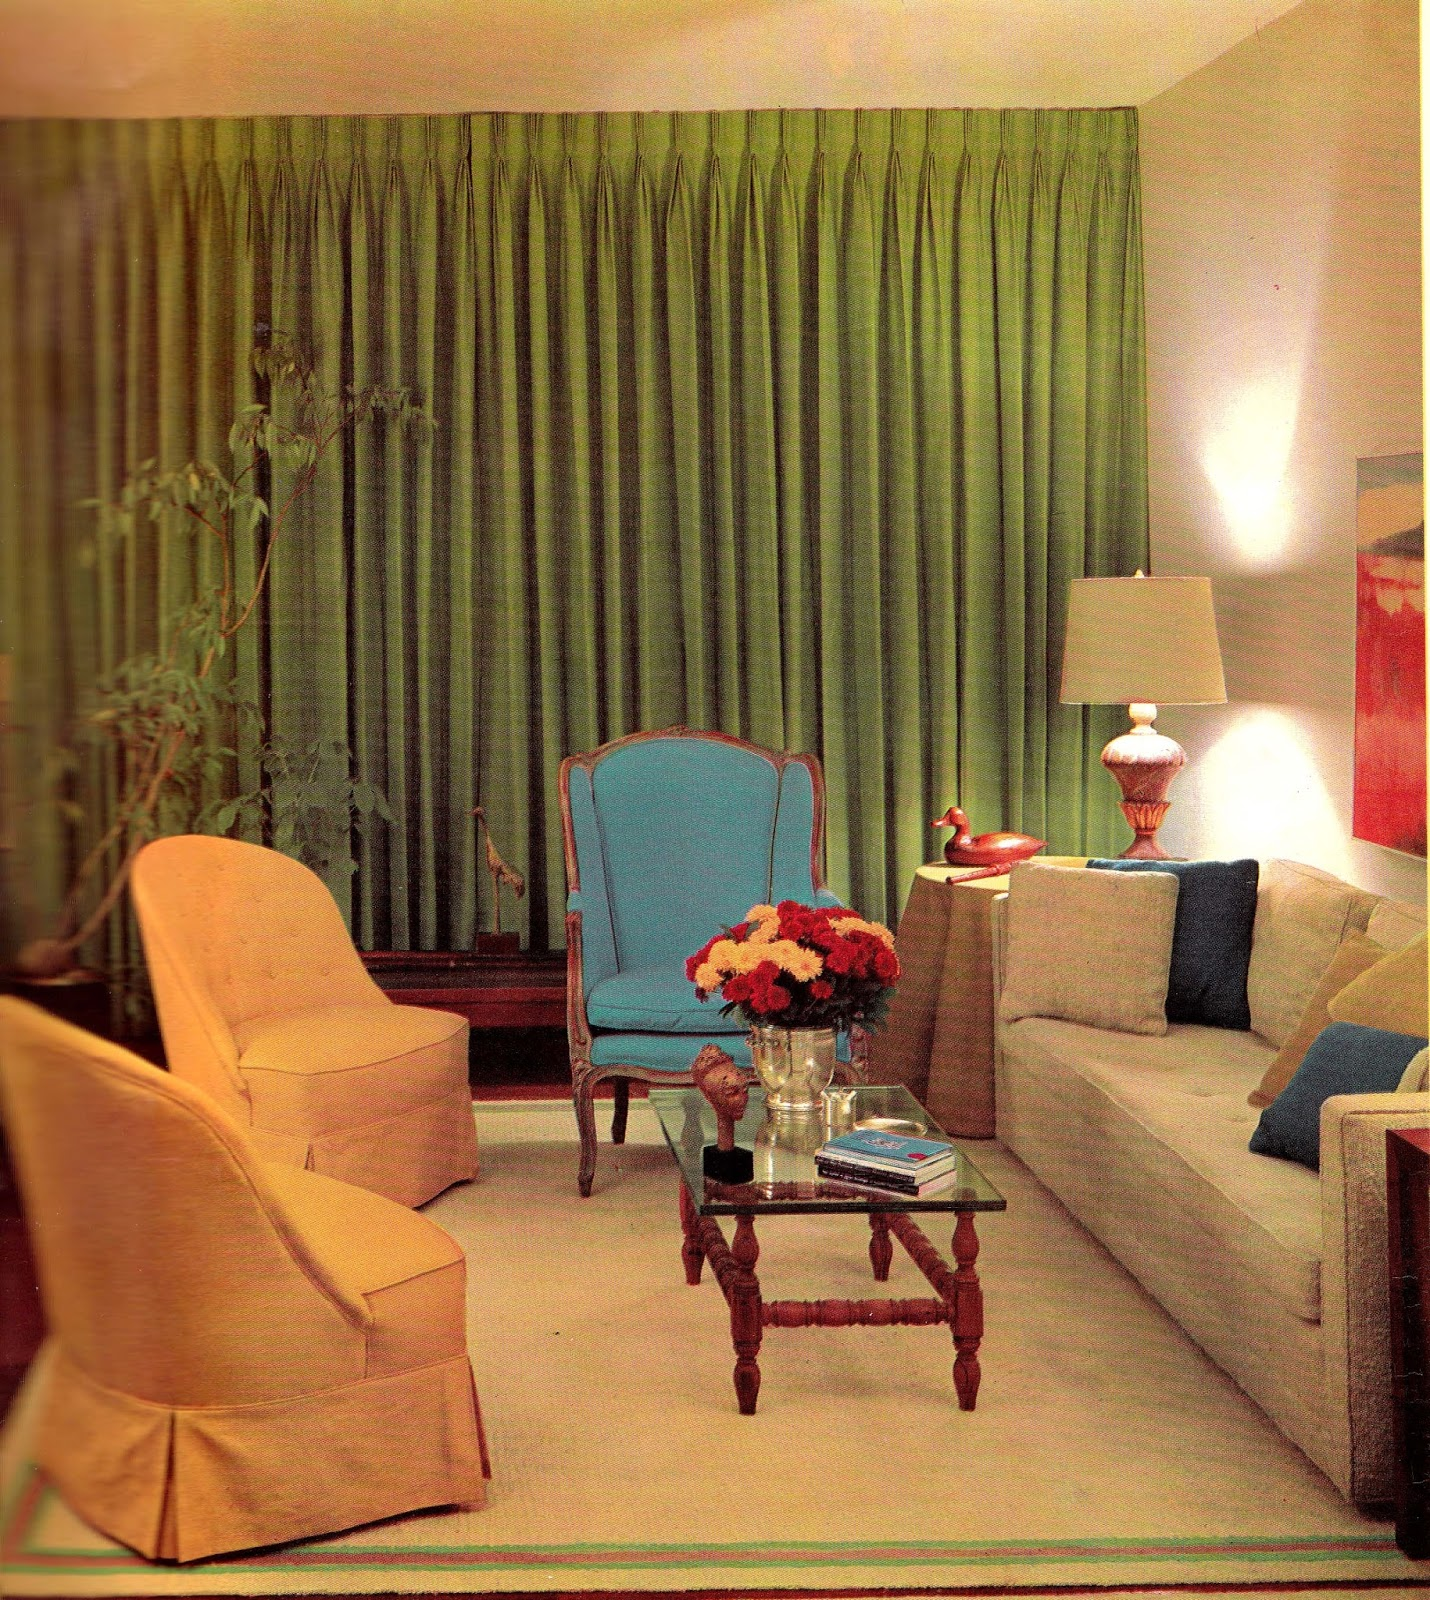 1960s interior d cor the decade of psychedelia gave rise to inventive and bold interior design for Interior decoration accessories